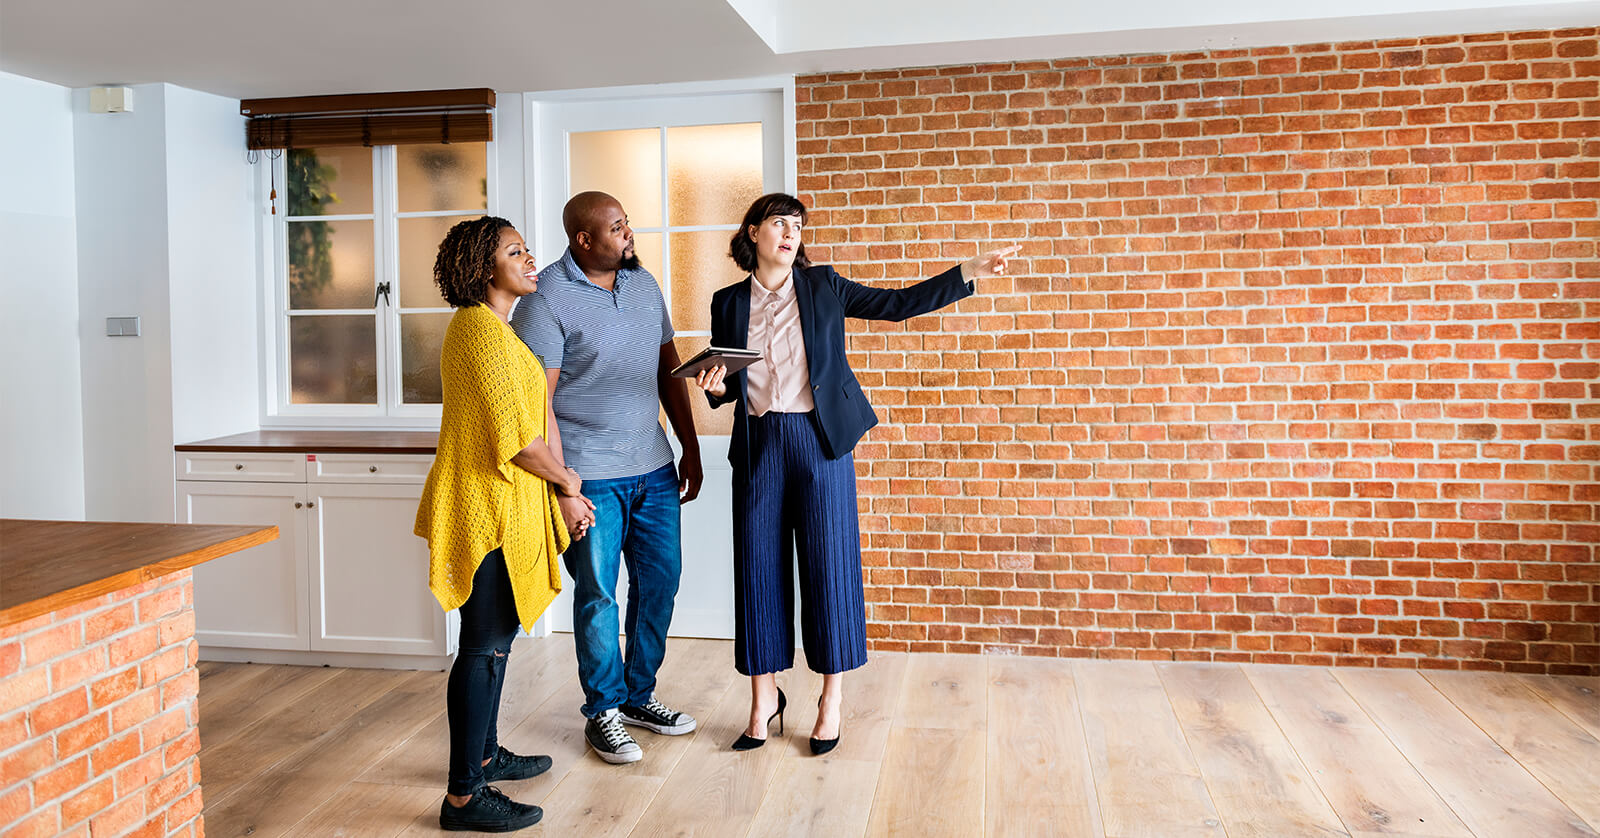 5 Essential Questions to Ask When Buying a House